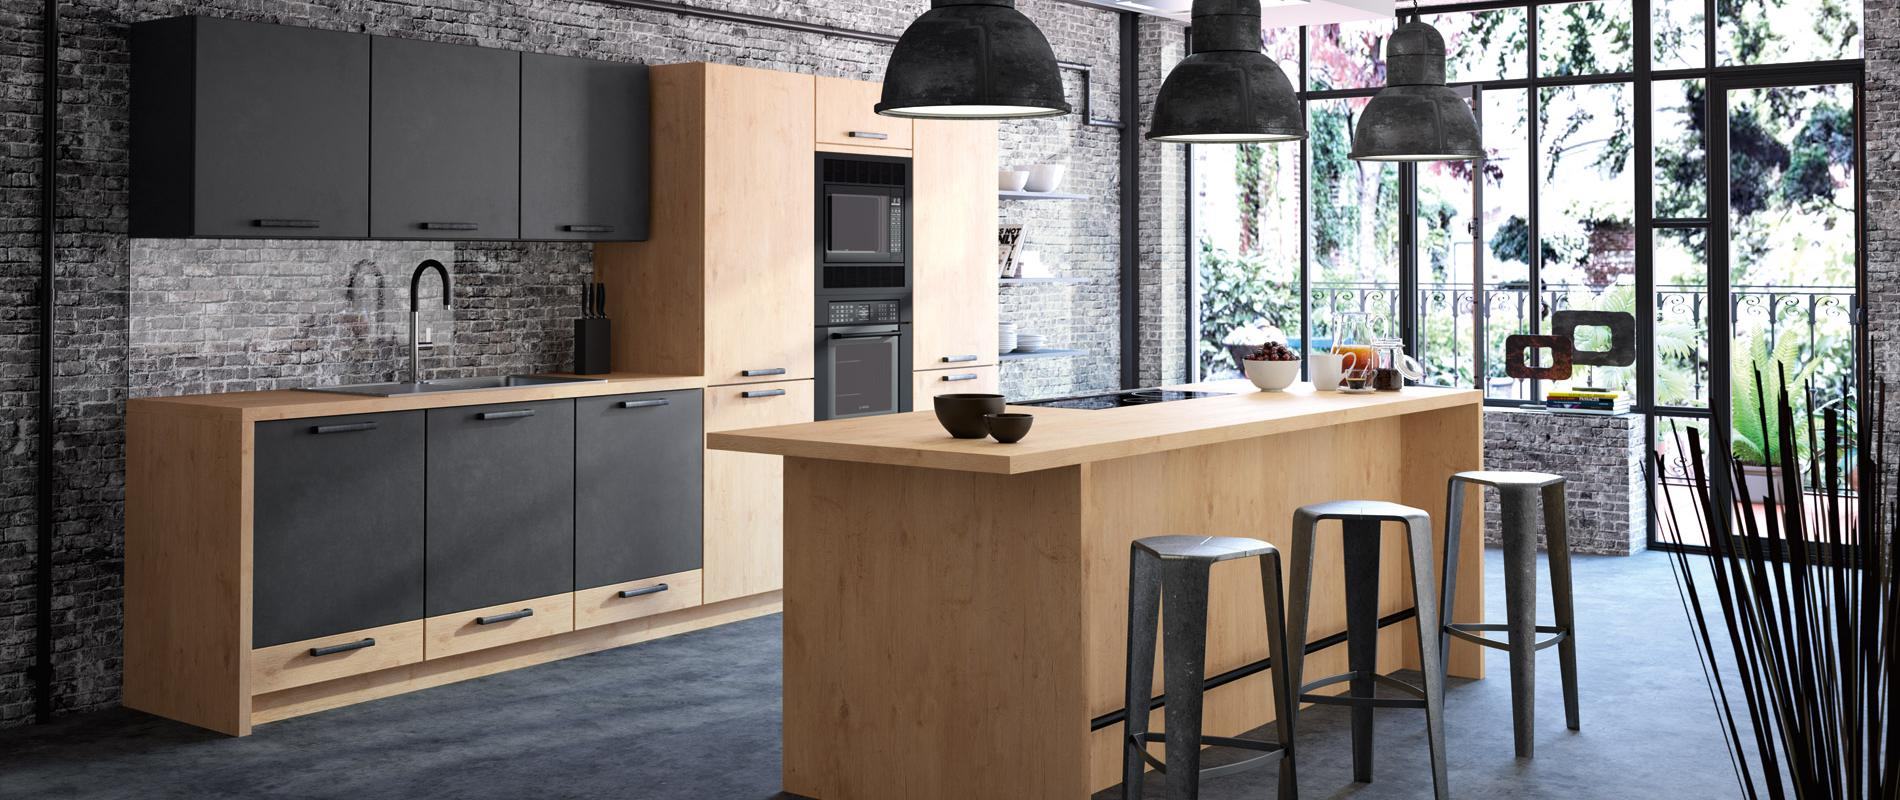 cuisine clermont ferrand magasin de cuisine meuble. Black Bedroom Furniture Sets. Home Design Ideas